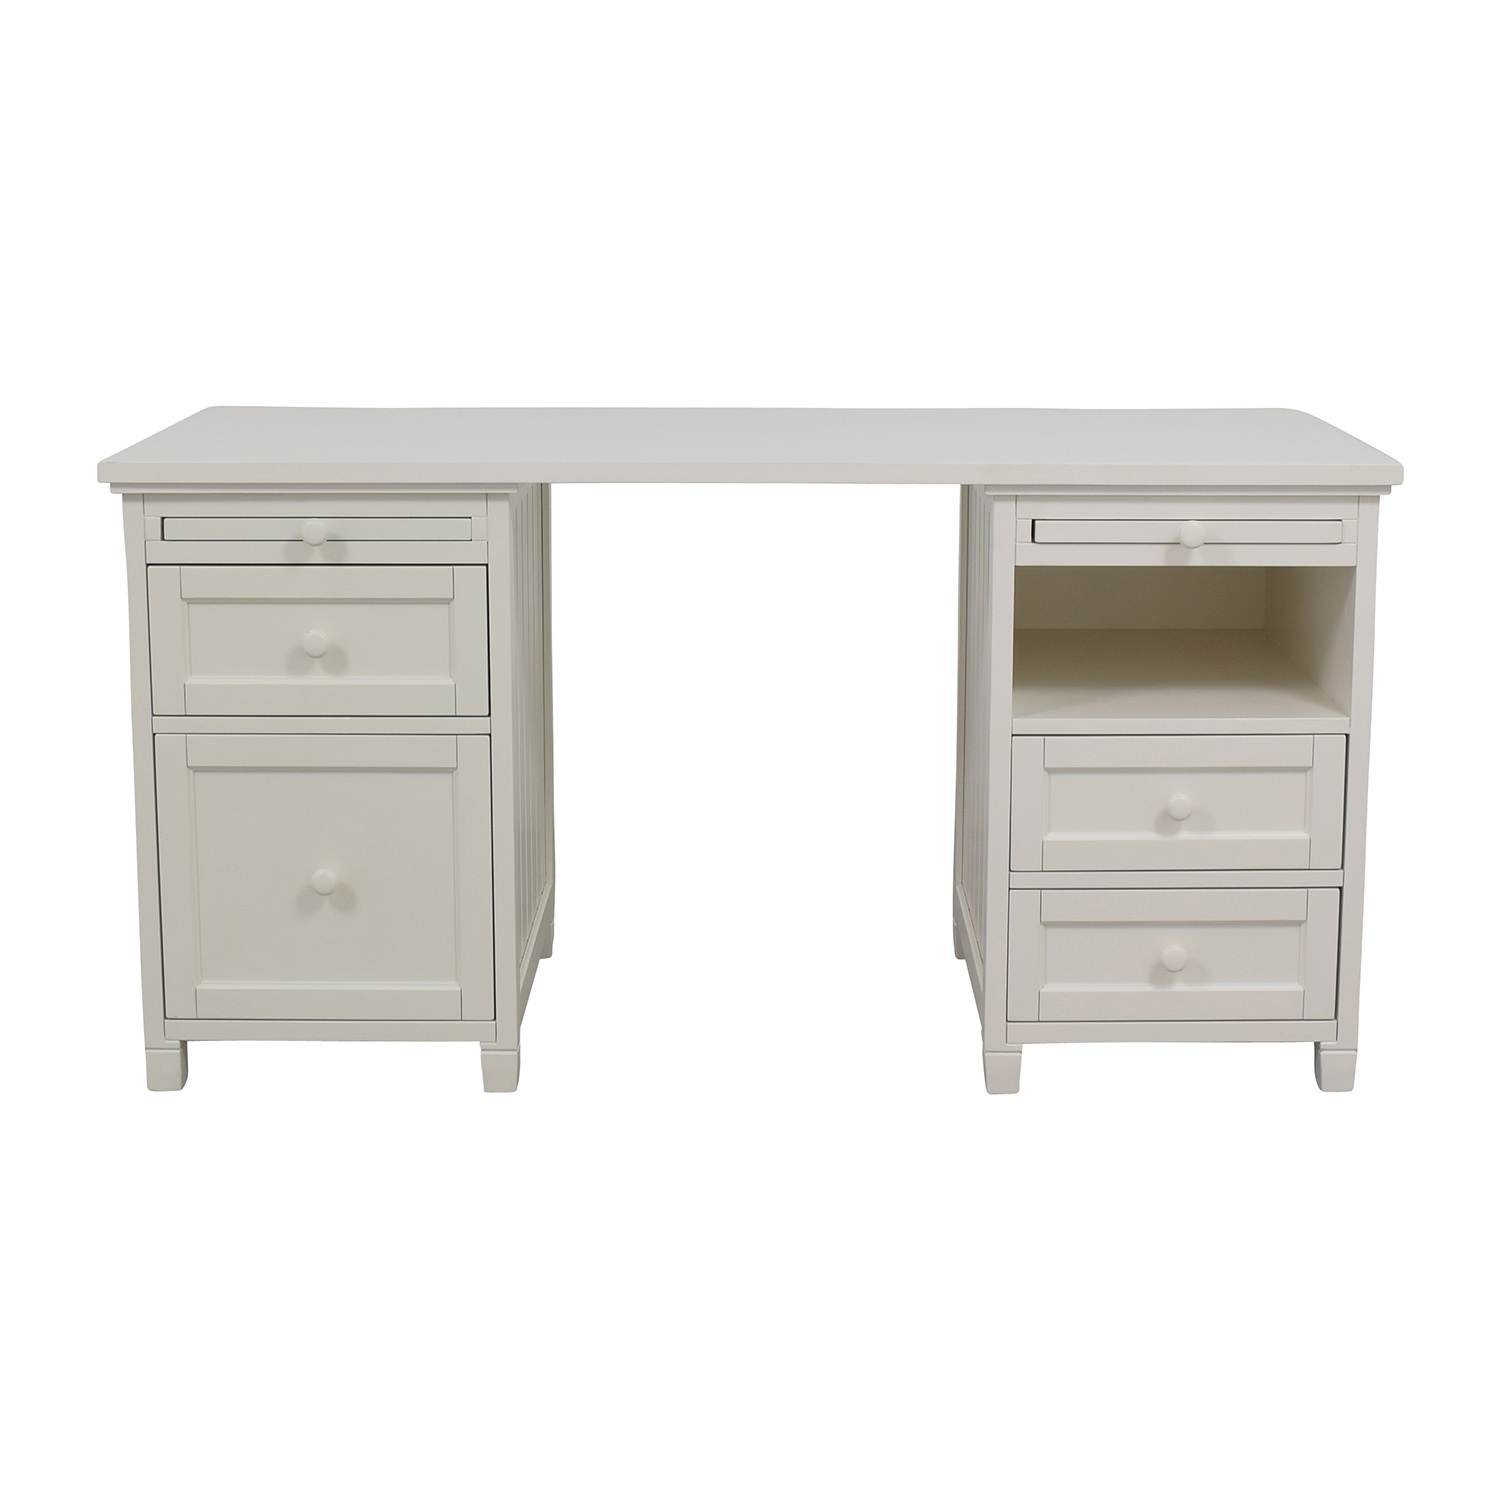 Pottery Barn Pottery Barn Off-White Four-Drawer Desk second hand